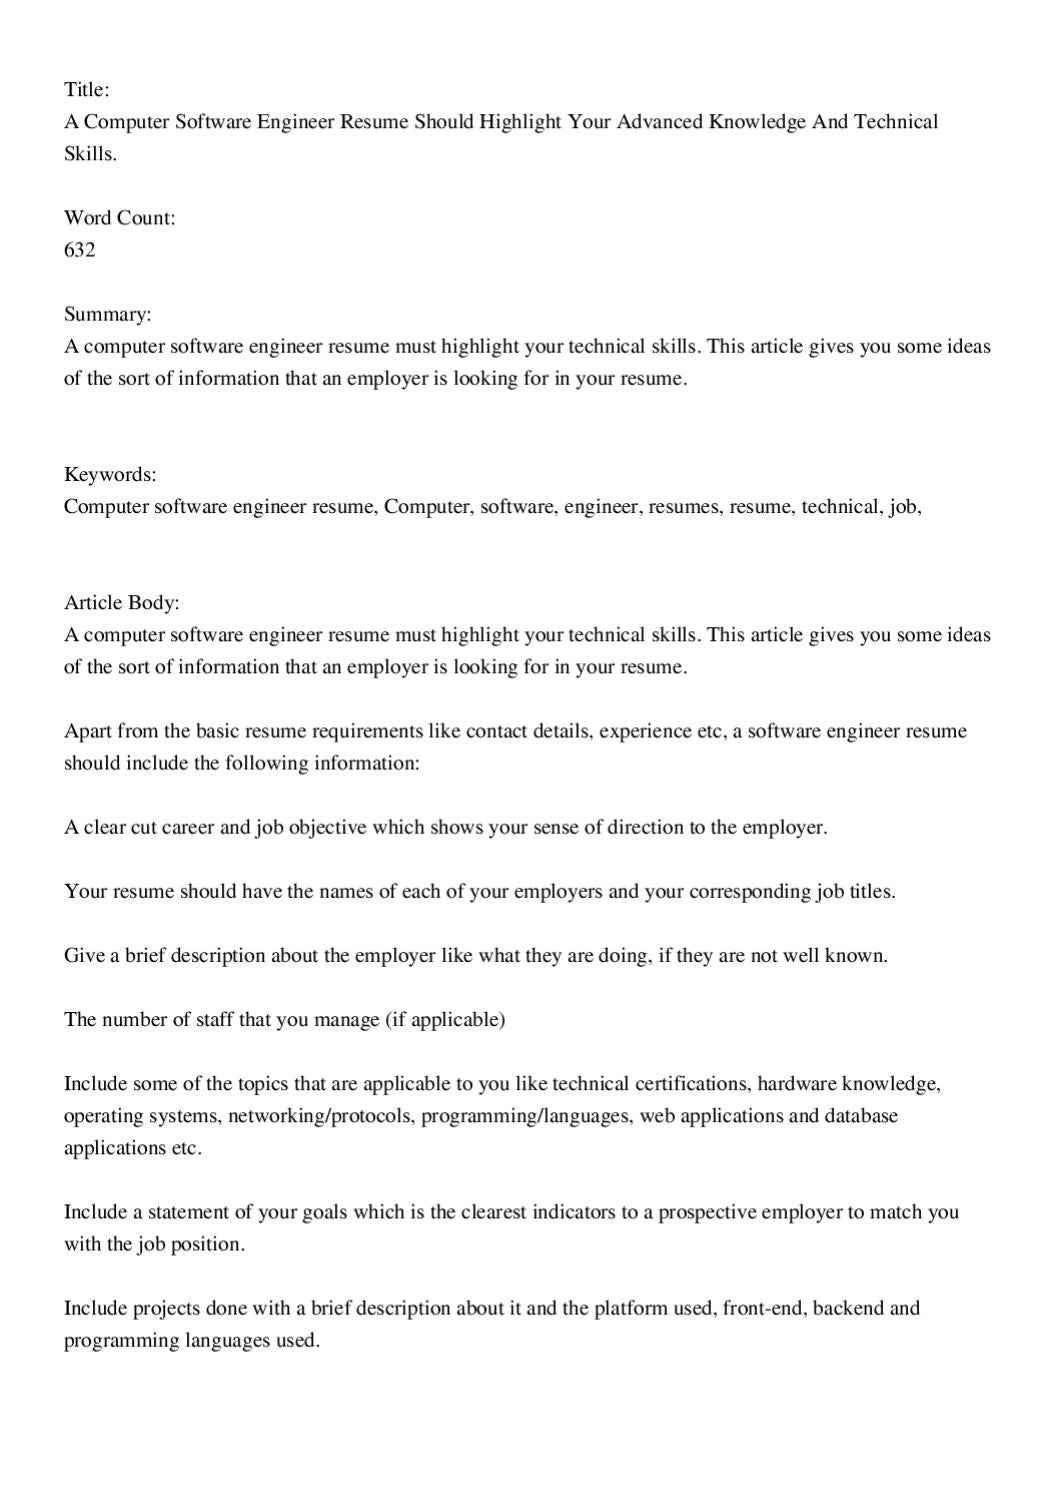 a computer software engineer resume should highlight your